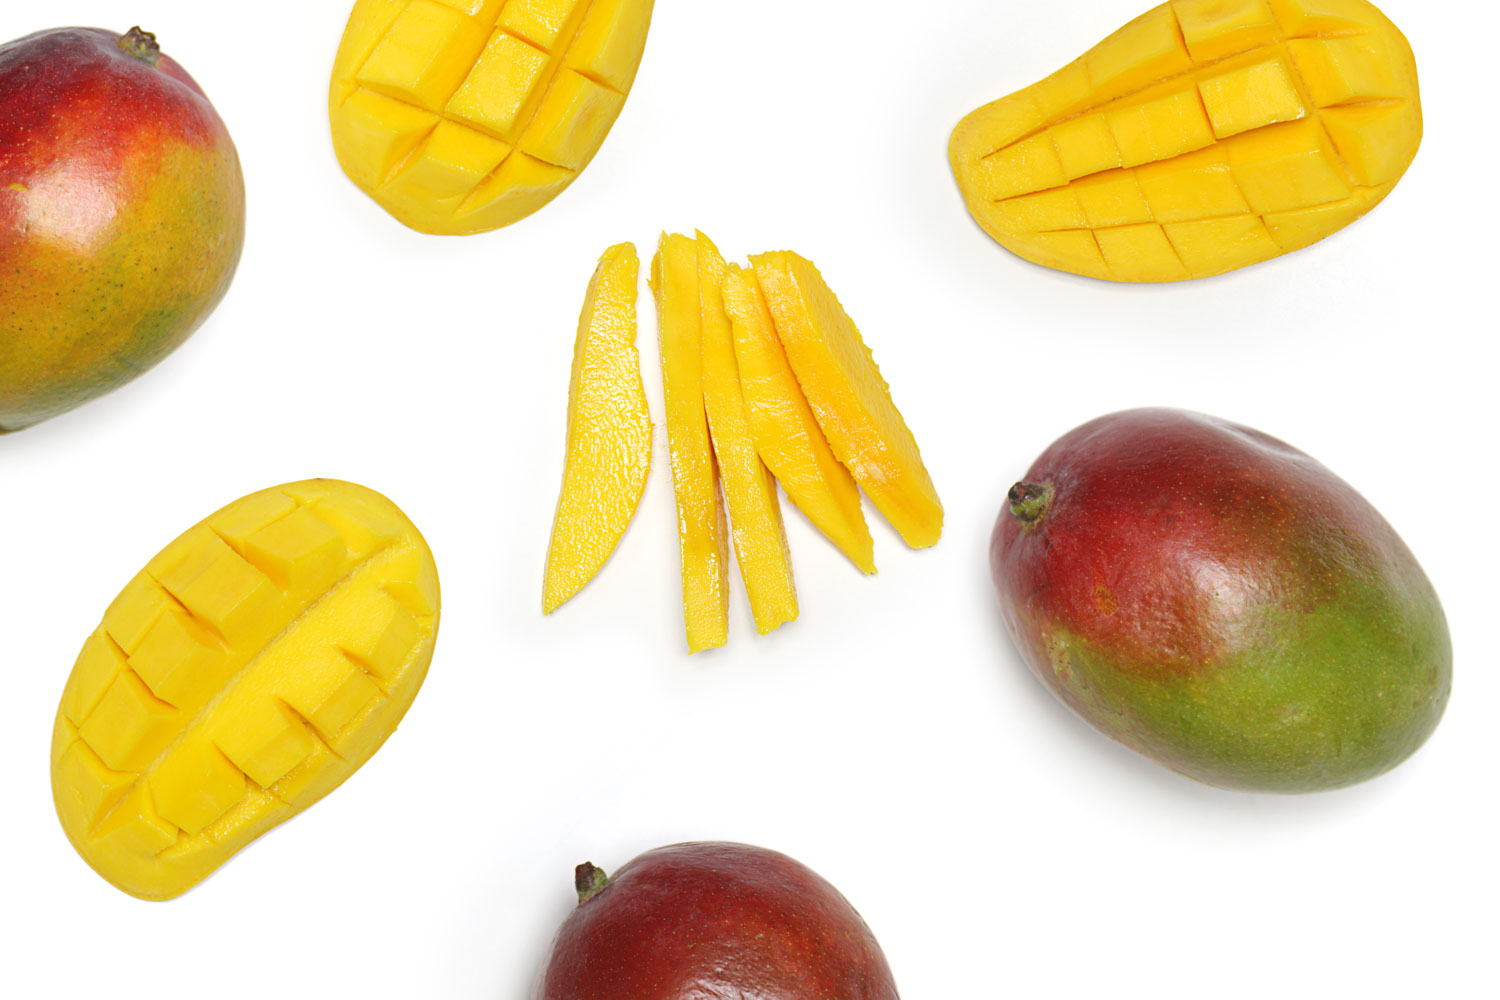 How To Cut A Mango In 7 Steps Or Less (video)